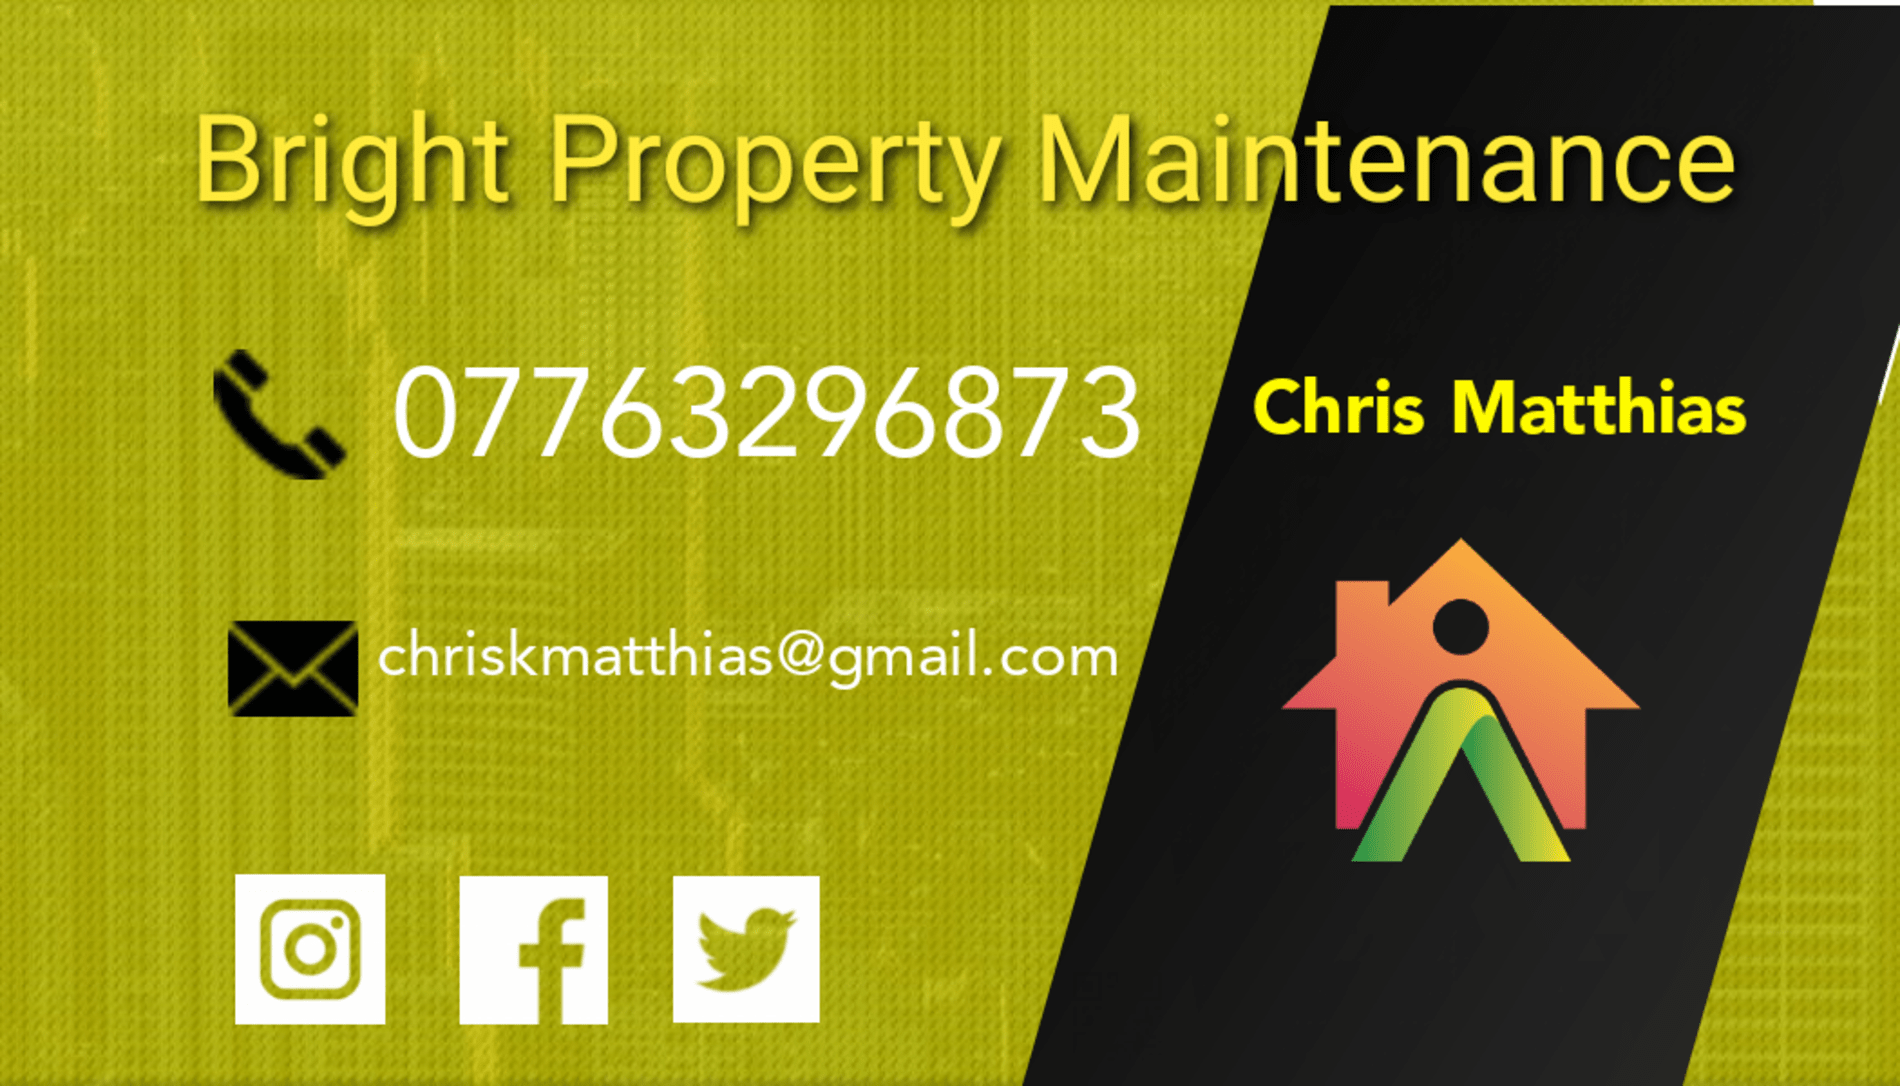 Bright Property Maintenance